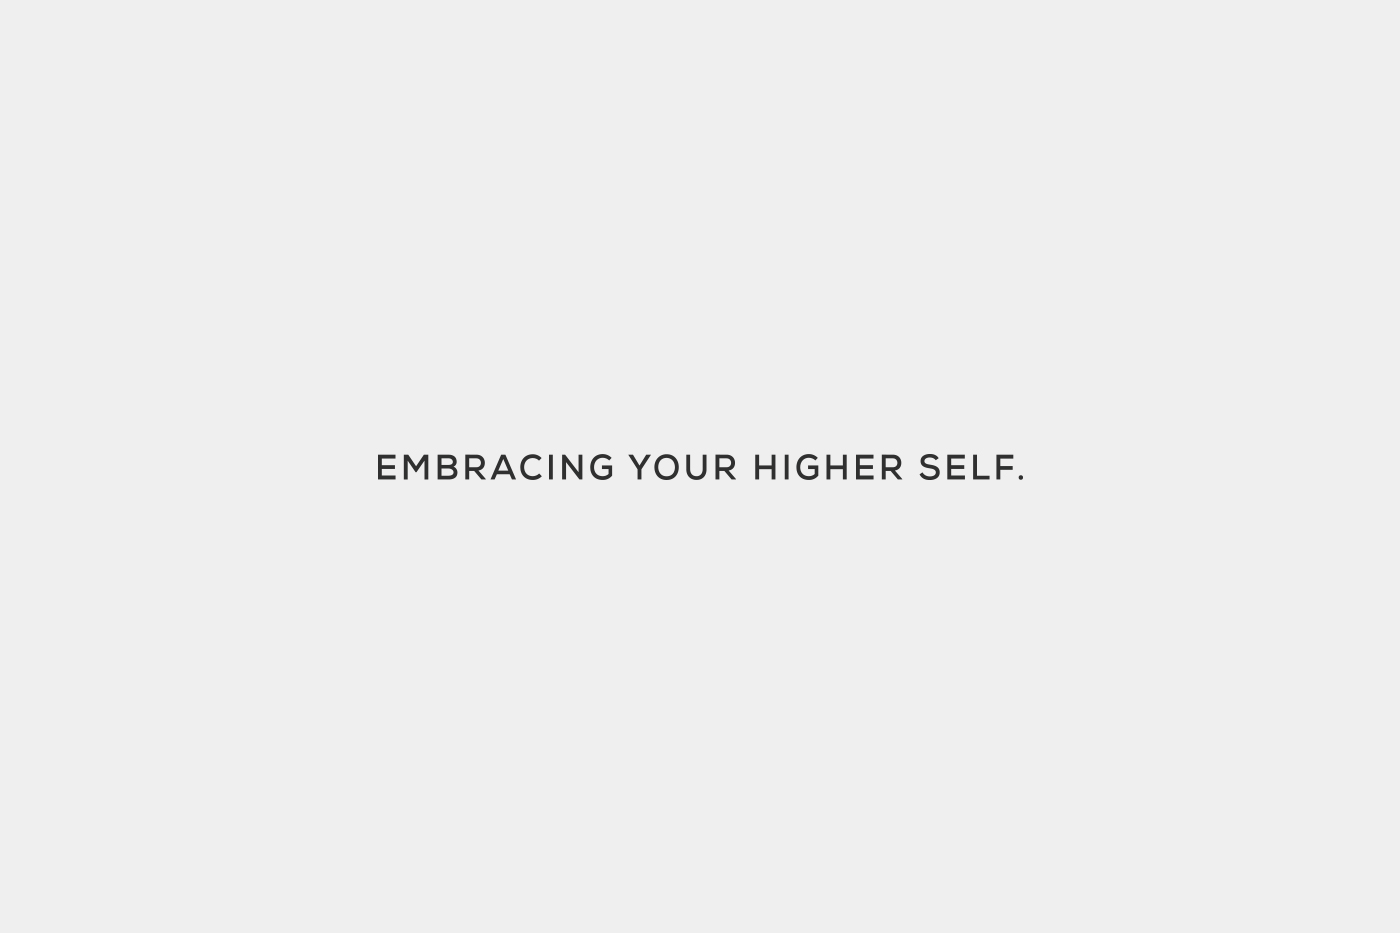 m-wearables-embracing-your-higher-self.jpg